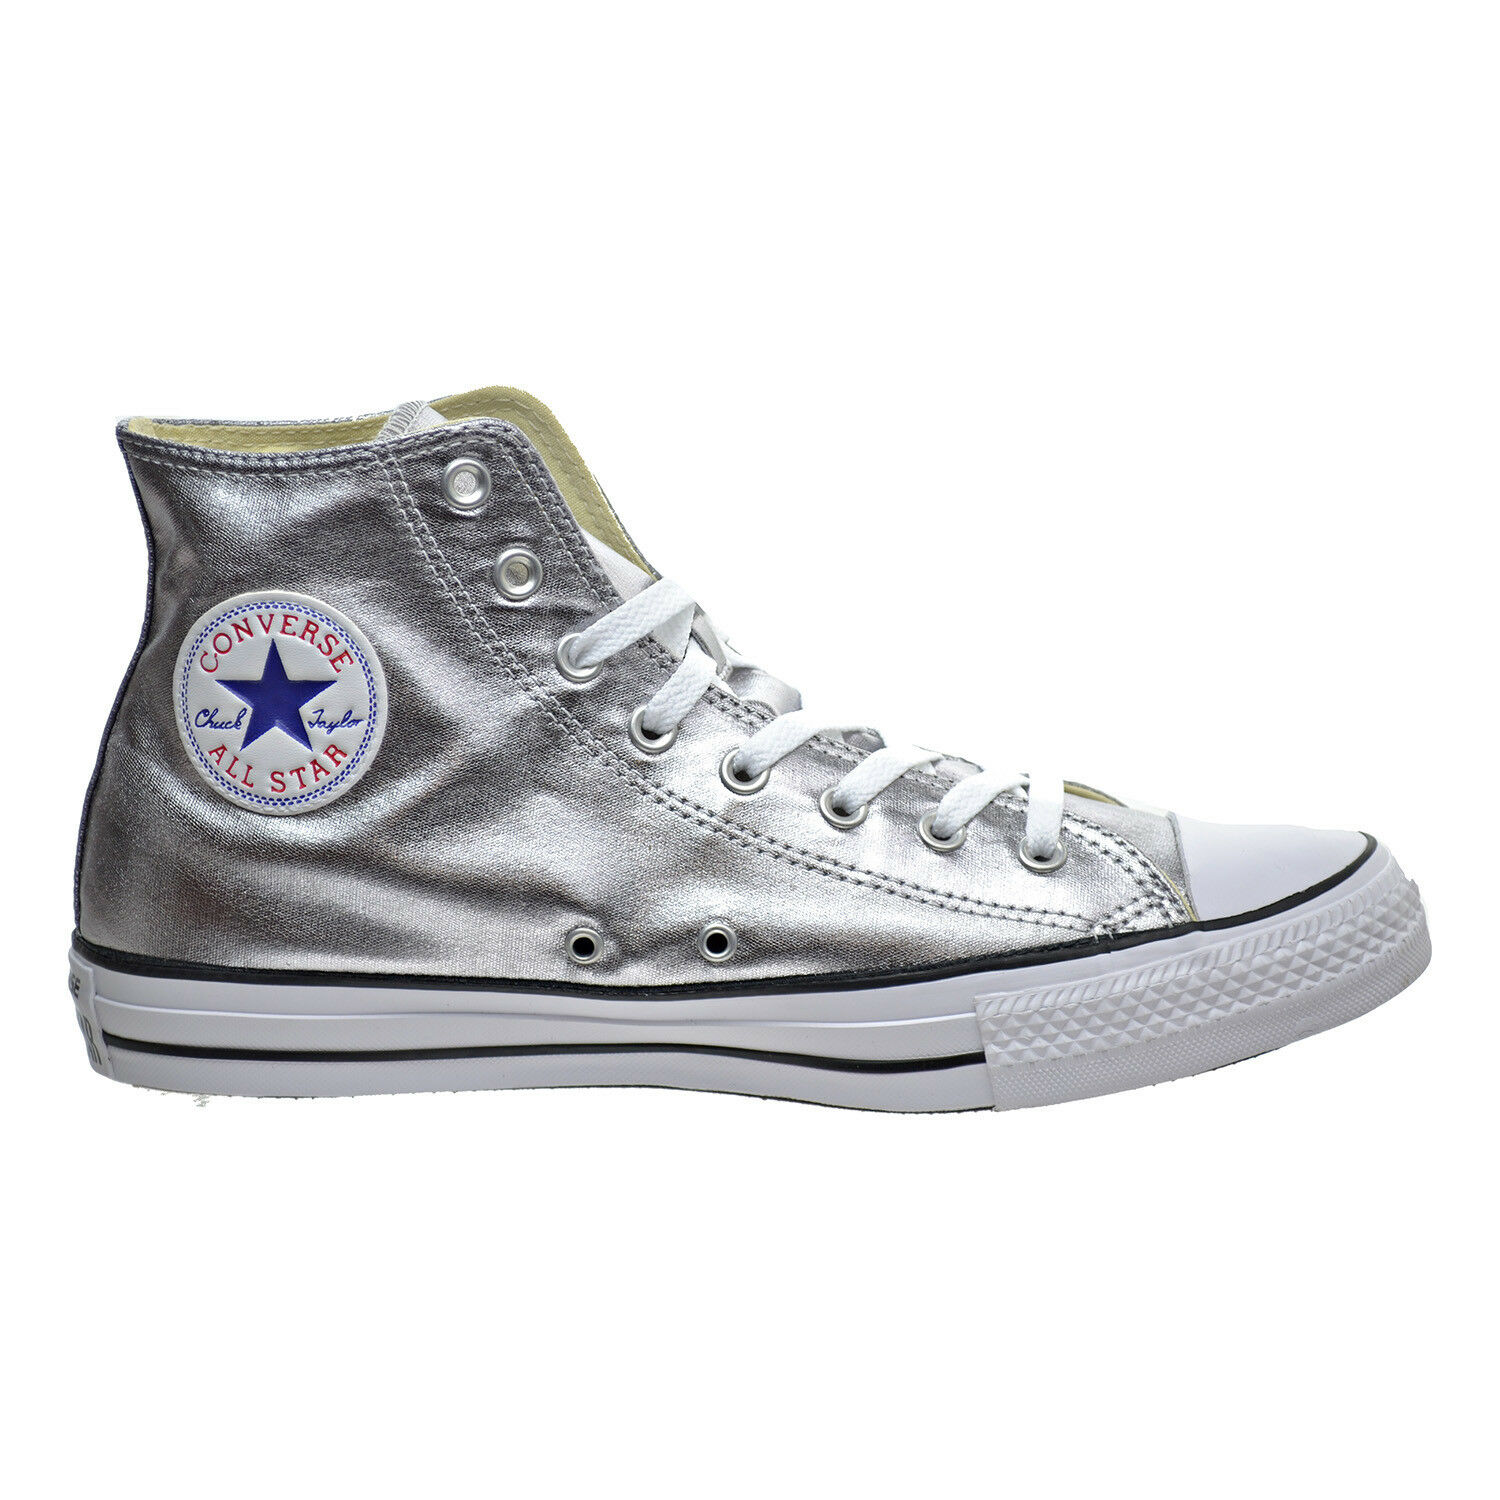 New Mens 10 Converse Chuck Taylor All Star CTAS Hi GunMetal Black 153177F  65